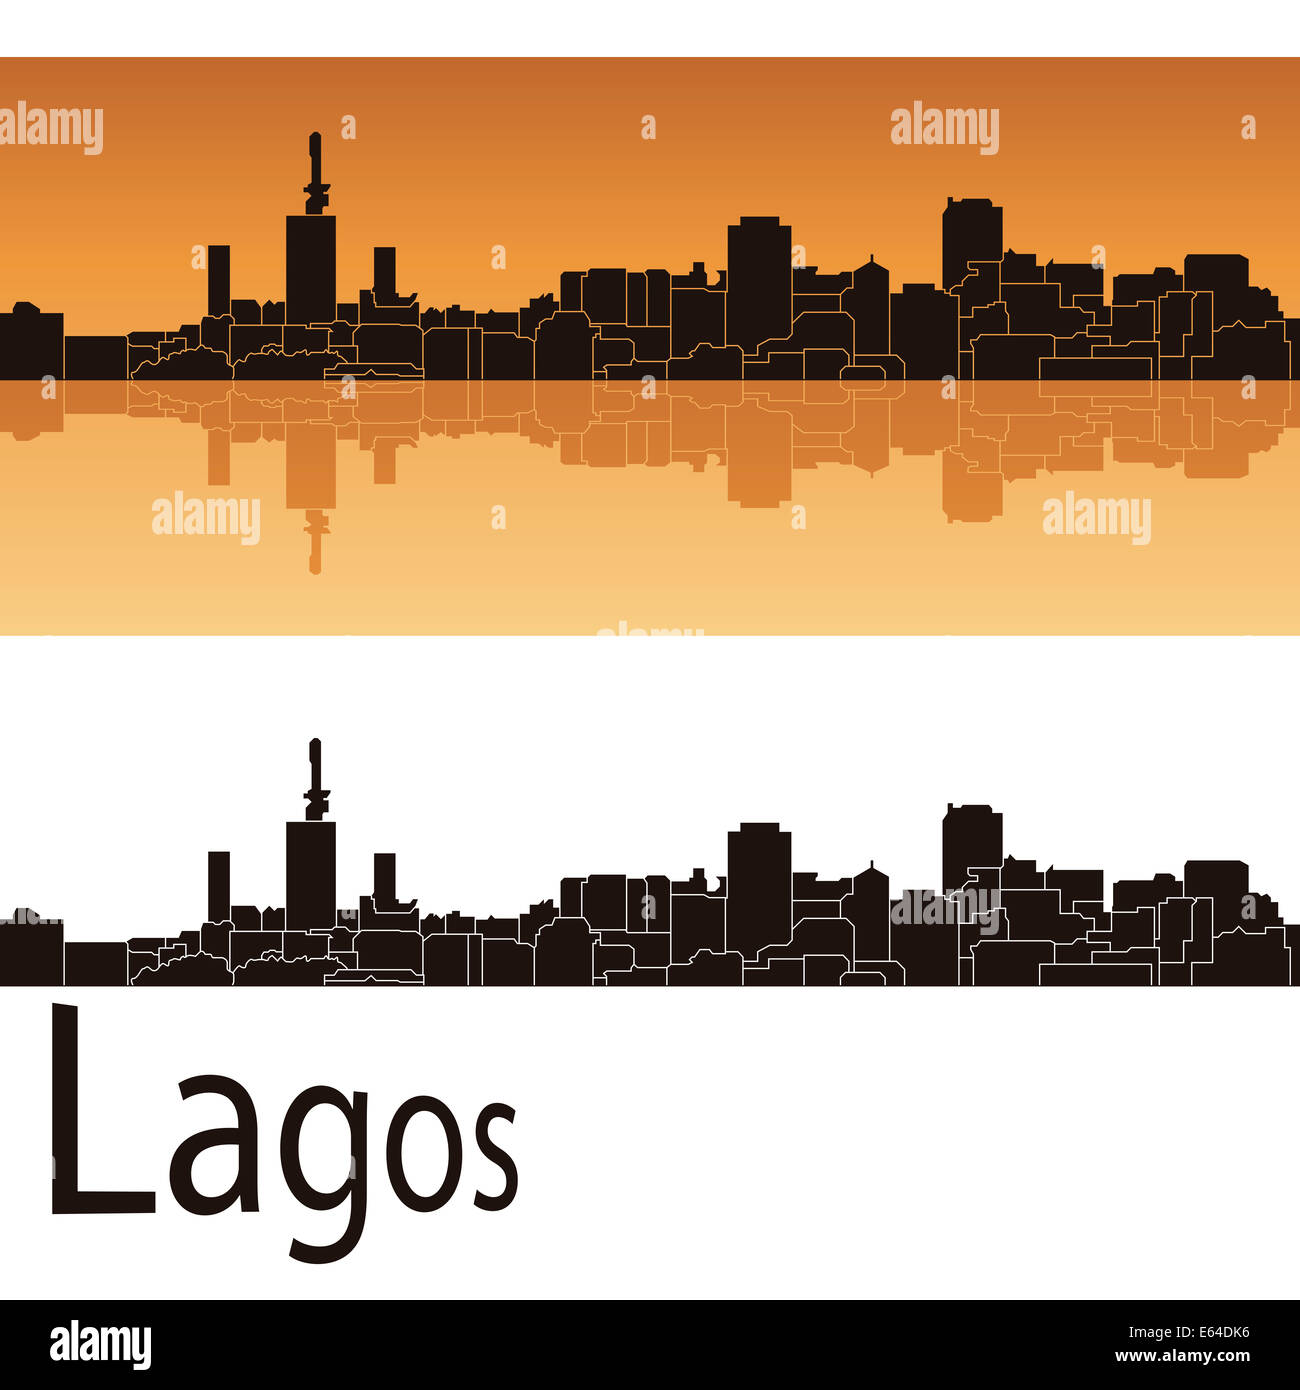 Lagos skyline in orange - Stock Image